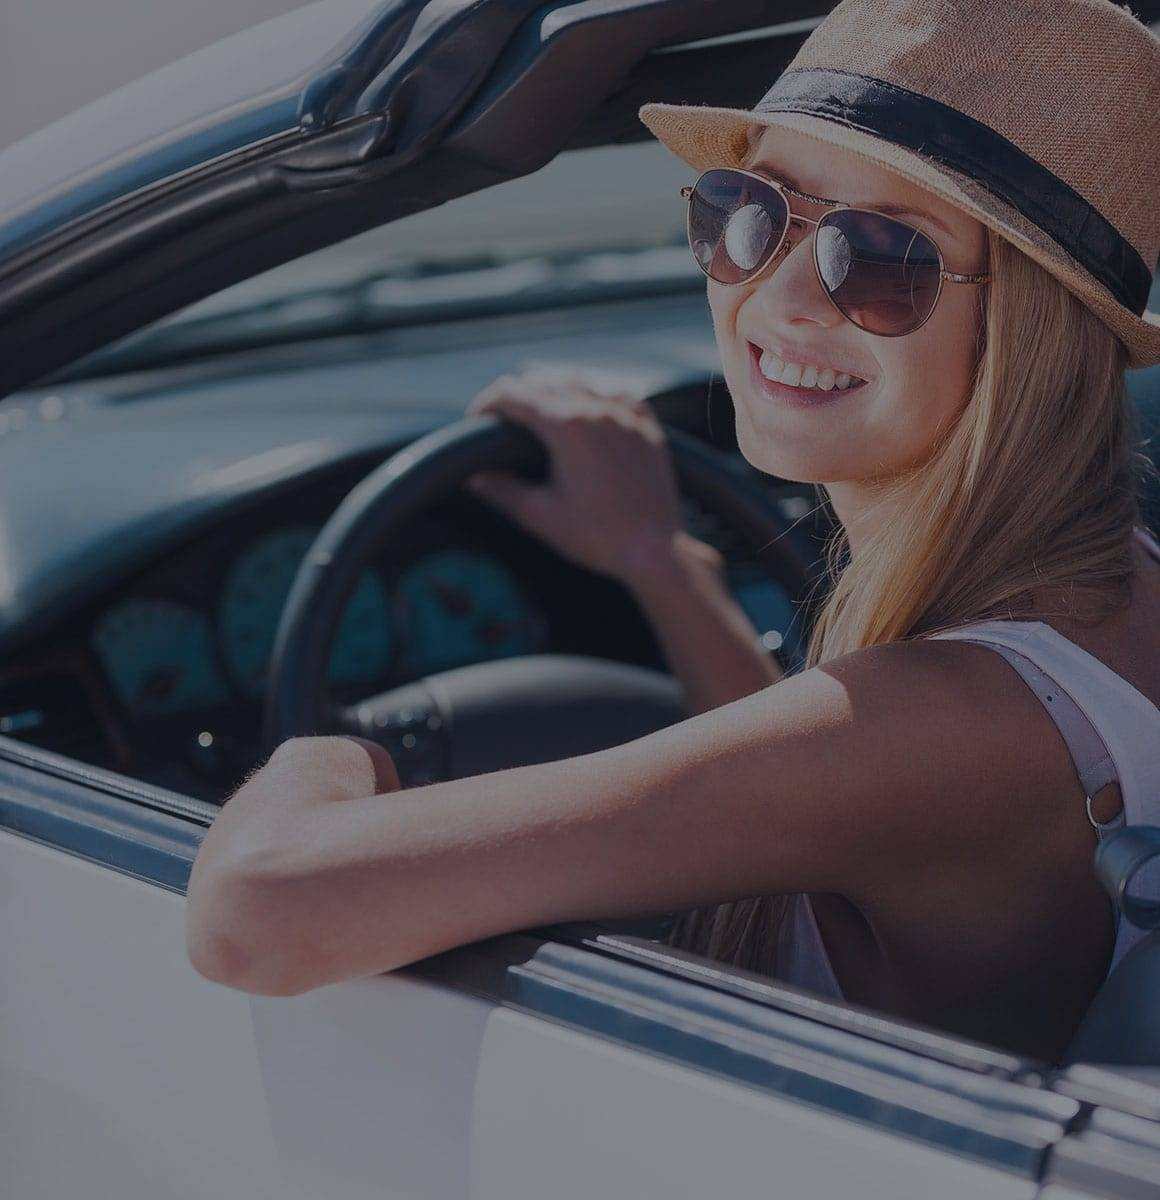 Get the best Flux Direct car insurance prices today